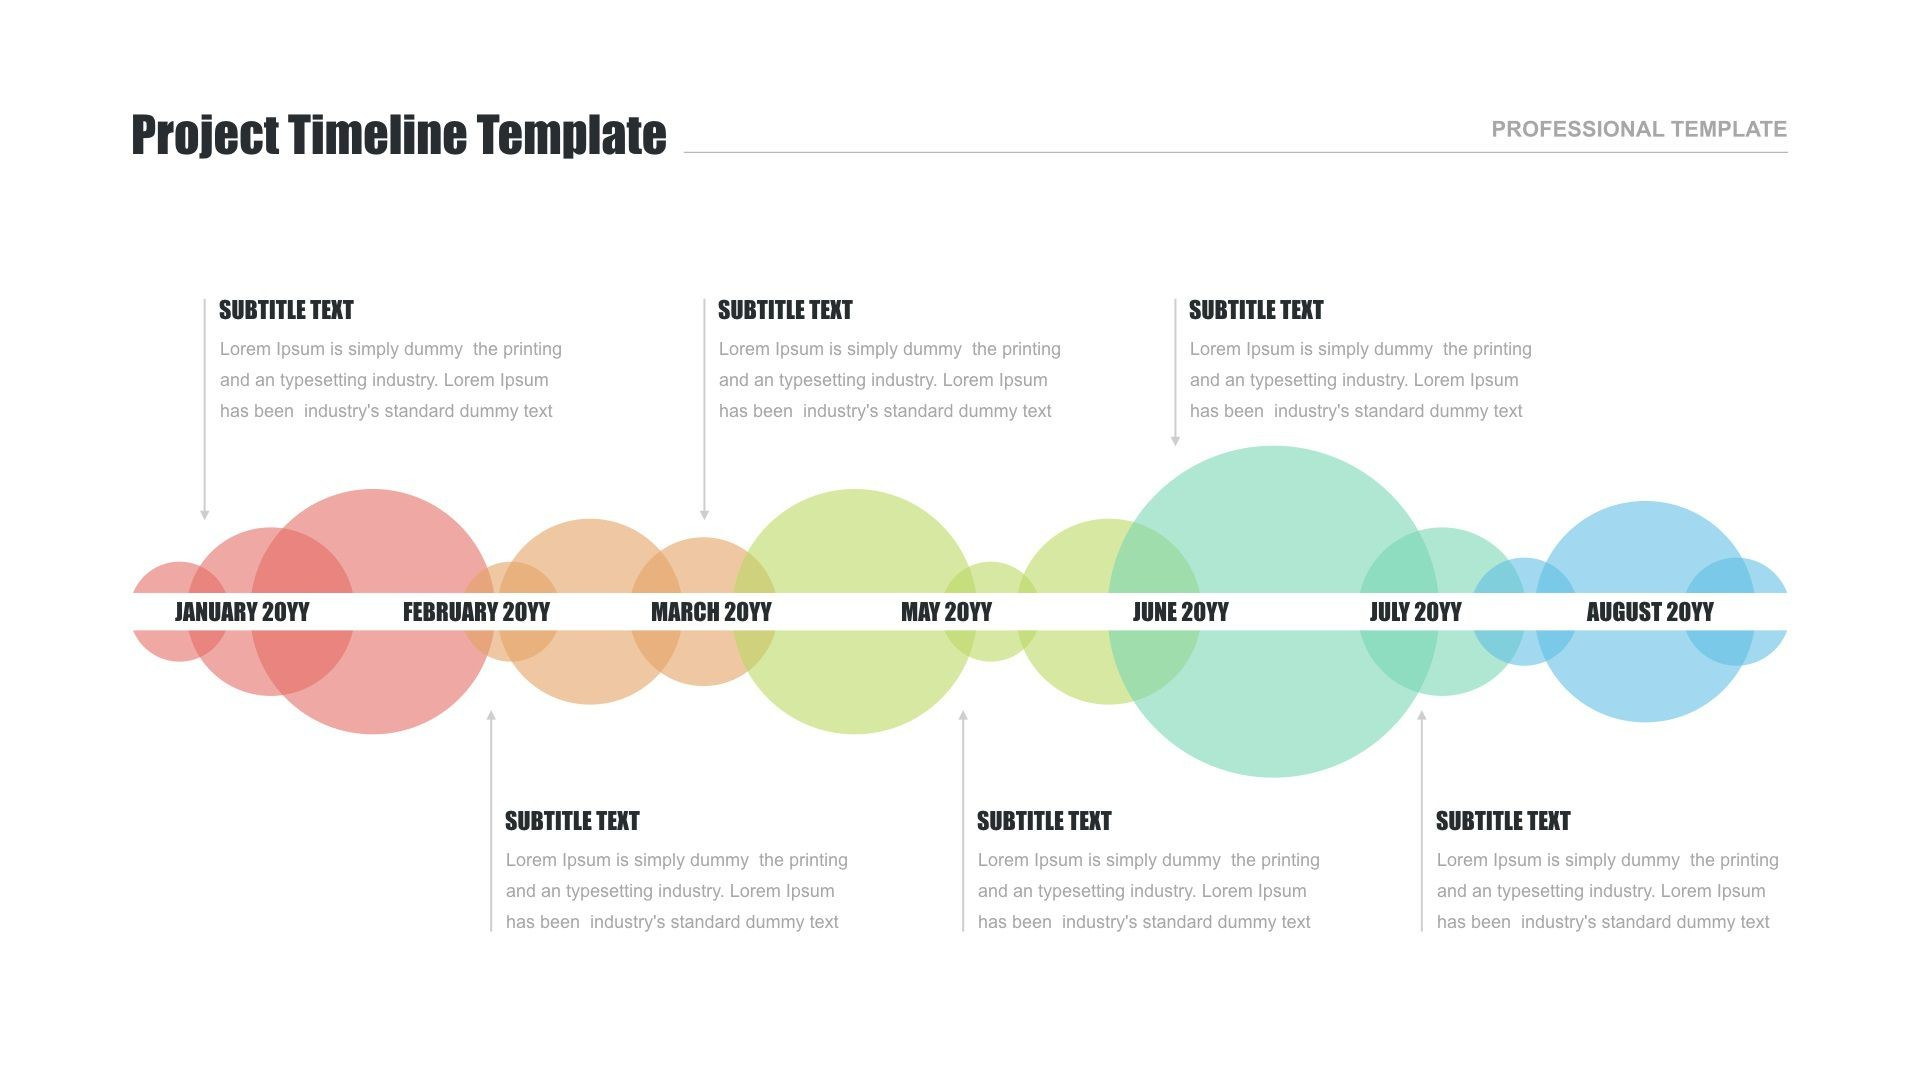 000 Surprising Project Timeline Template Powerpoint High Def  M Ppt Free Download1920